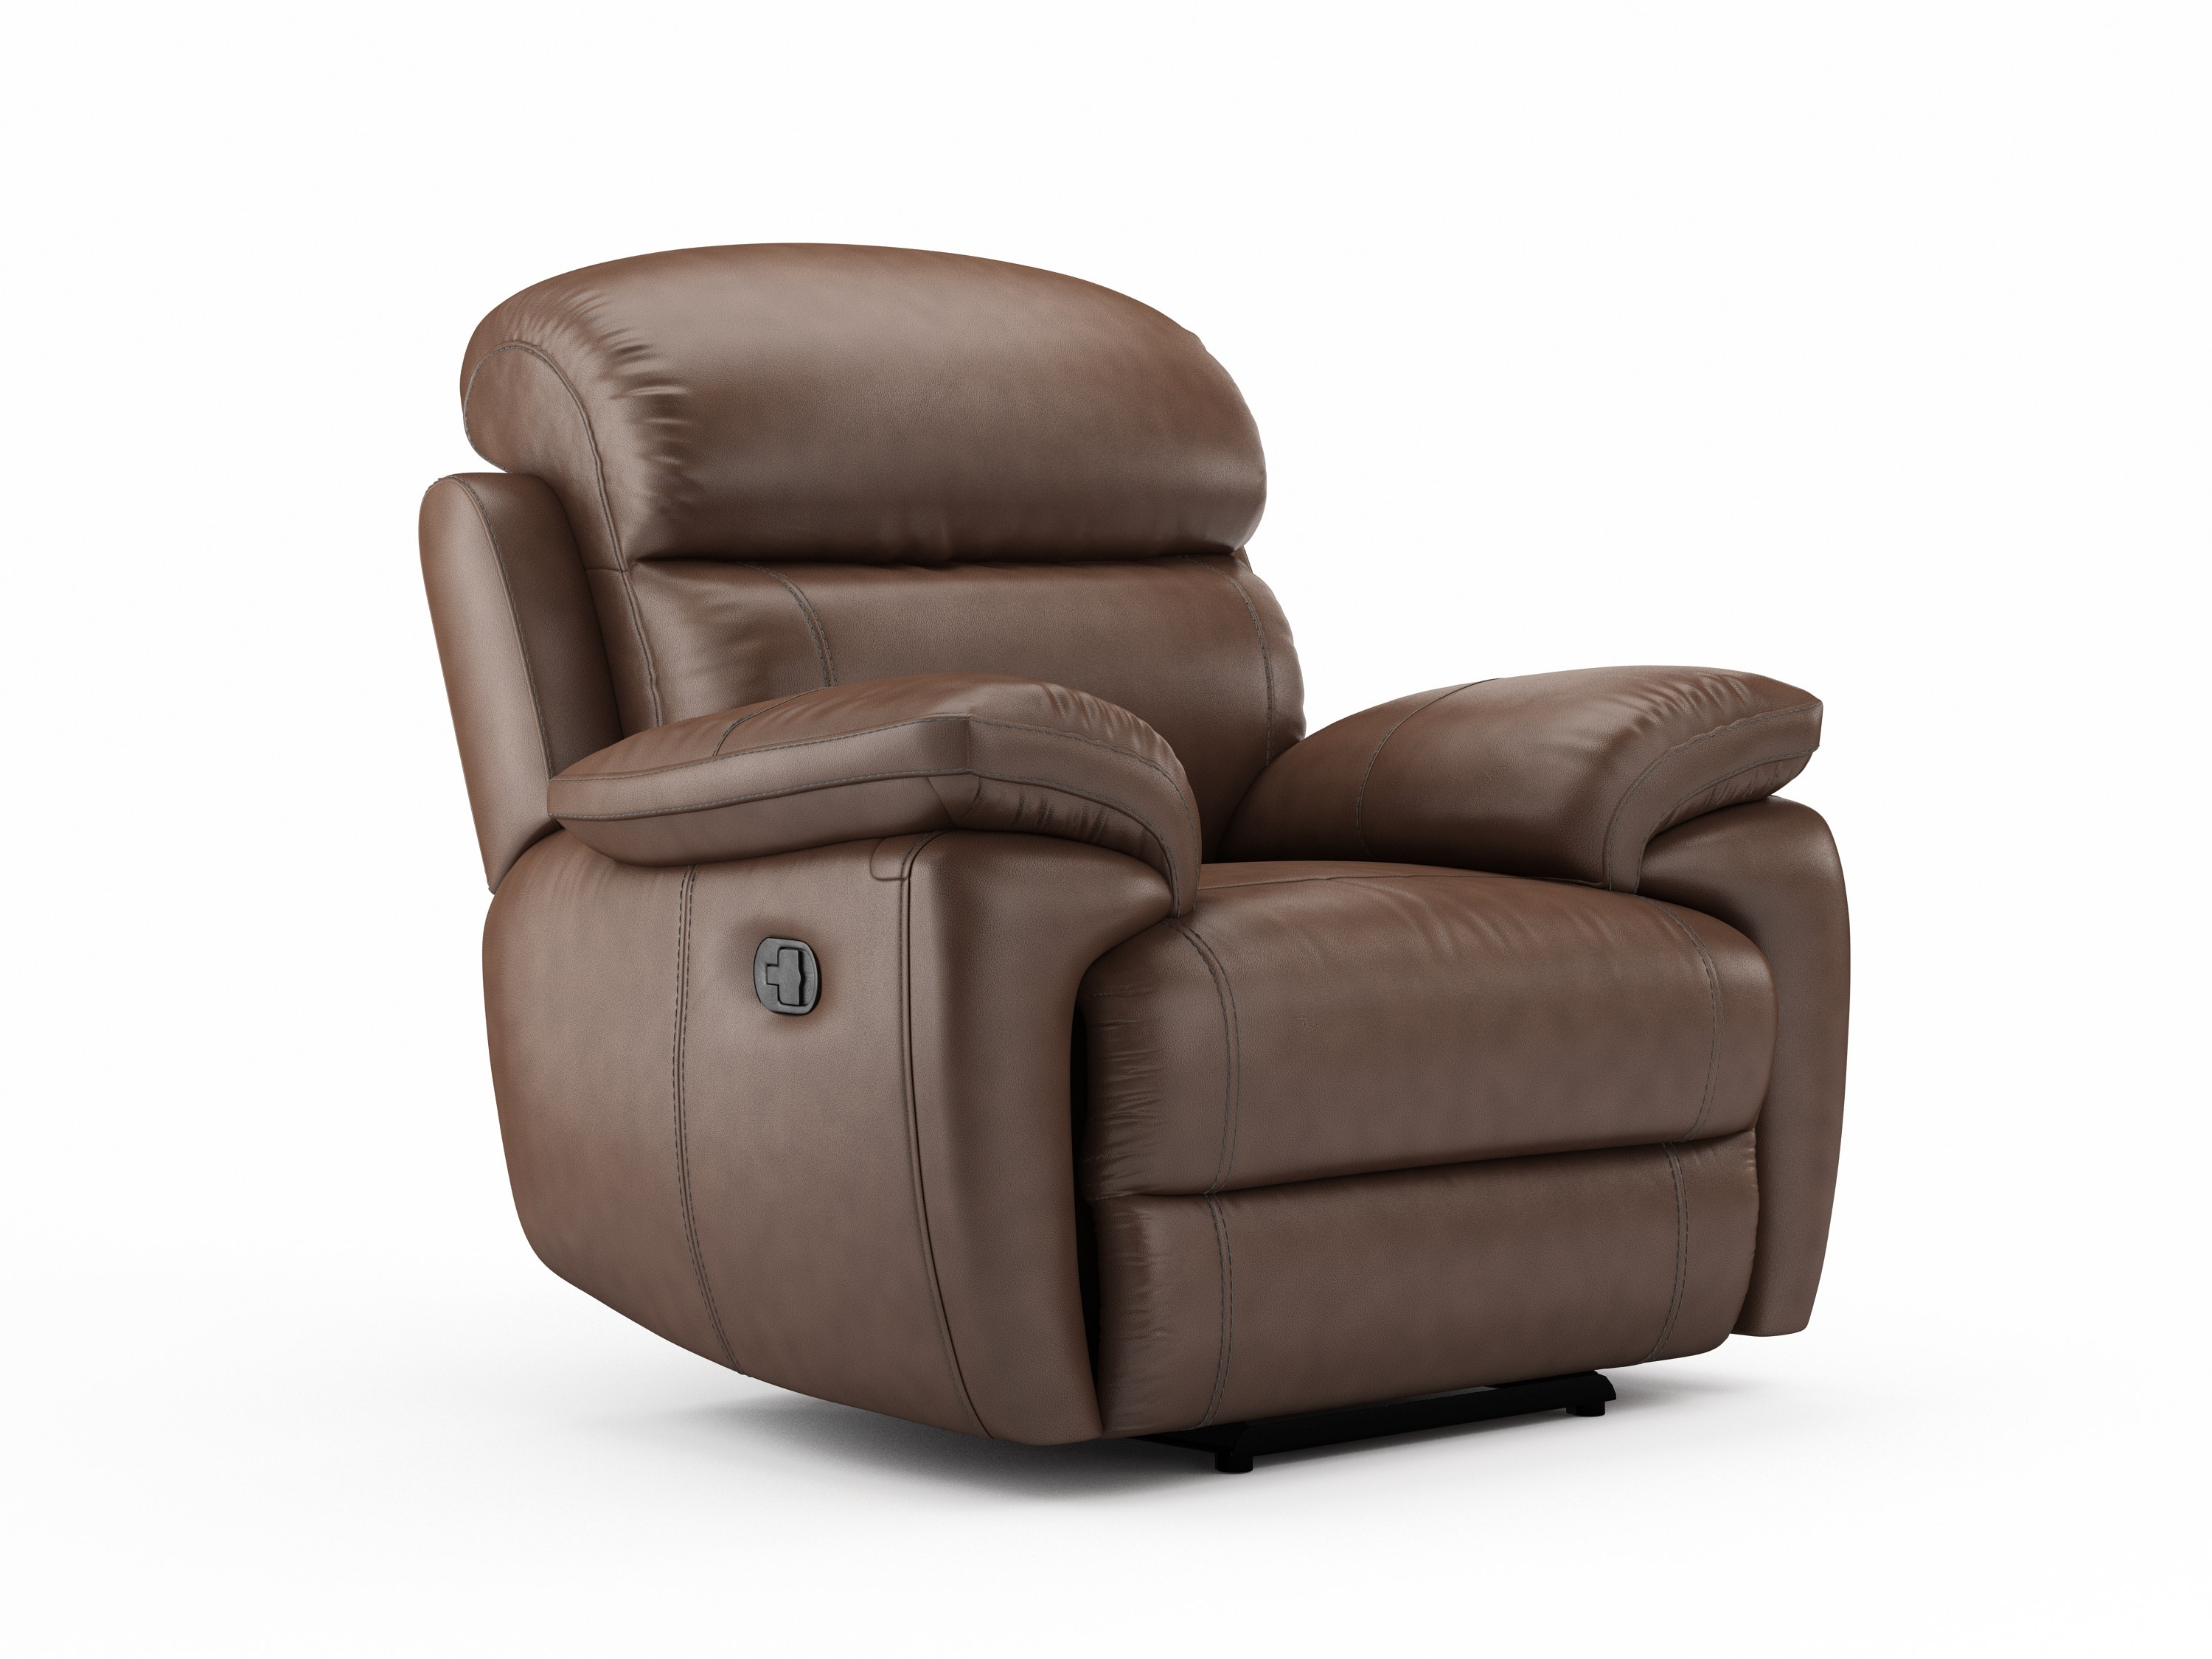 Maya Recliner Armchair | Colour options